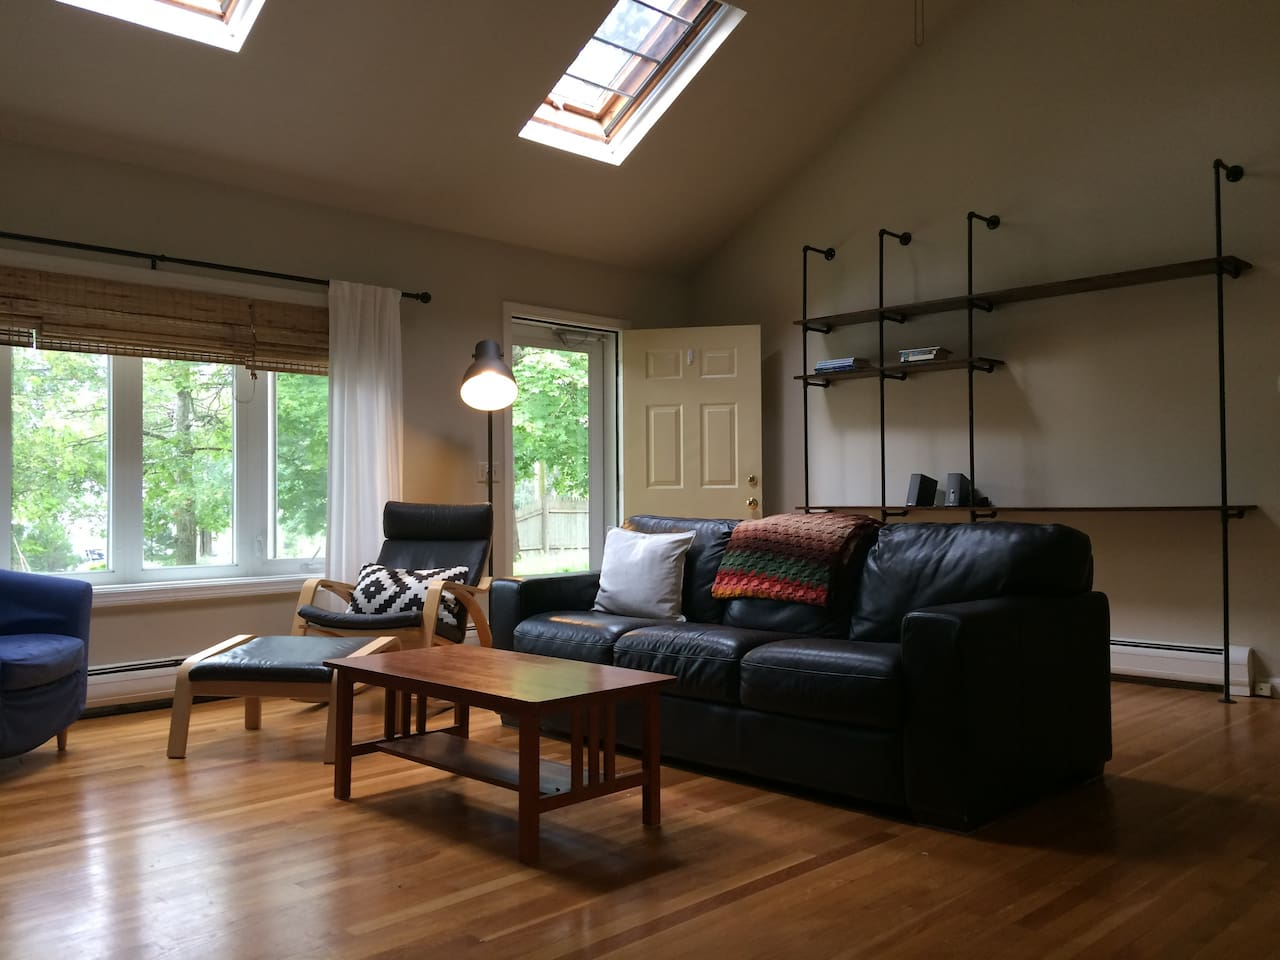 The heart of the house is this breezy, skylit living room with a cathedral ceiling.